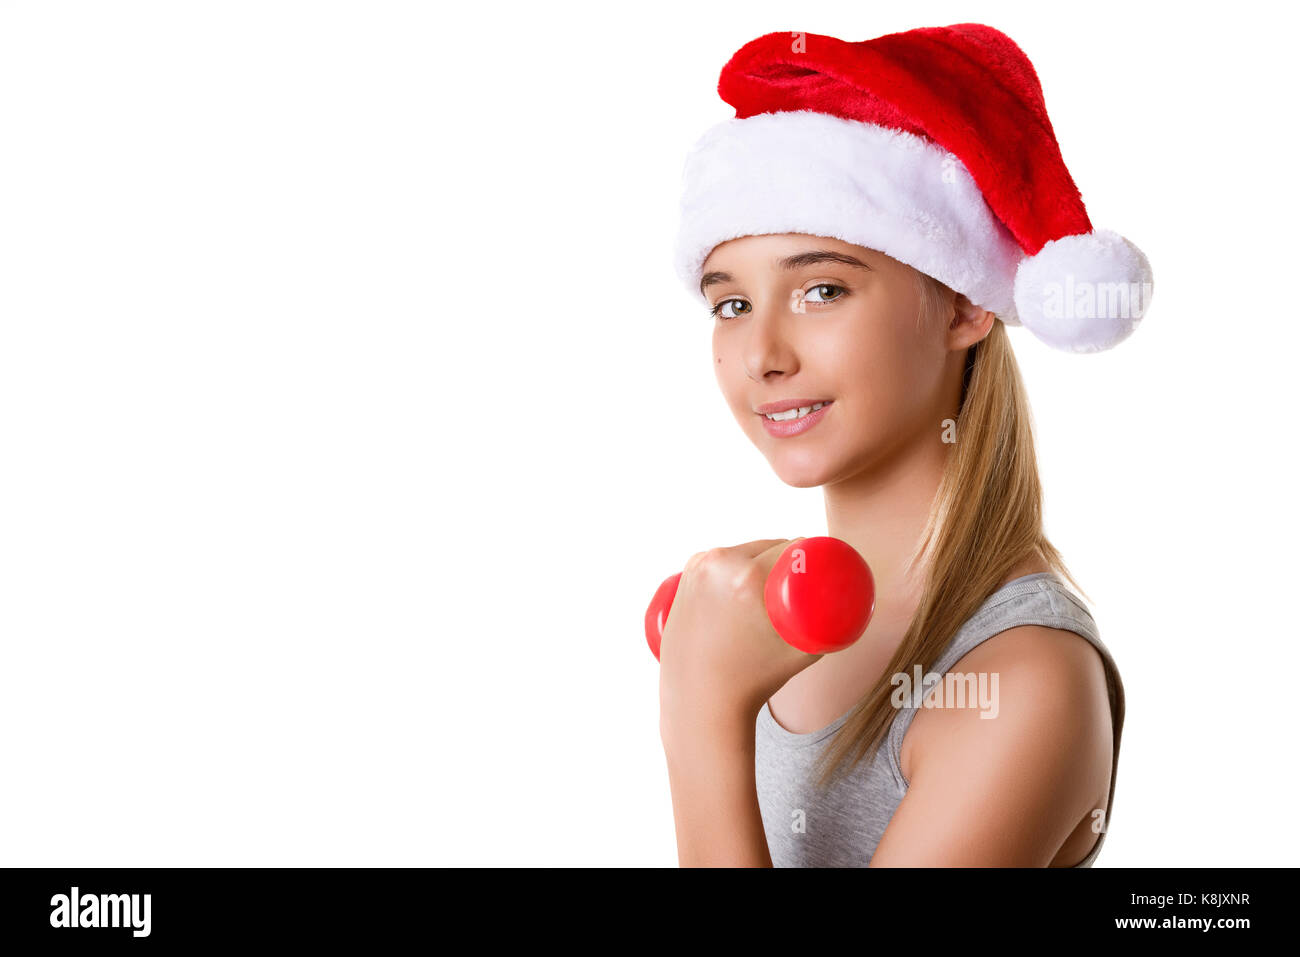 Fitness christmas young girl training lifting hand weight wearing santa hat. Female model working out with dumbbells,isolated - Stock Image